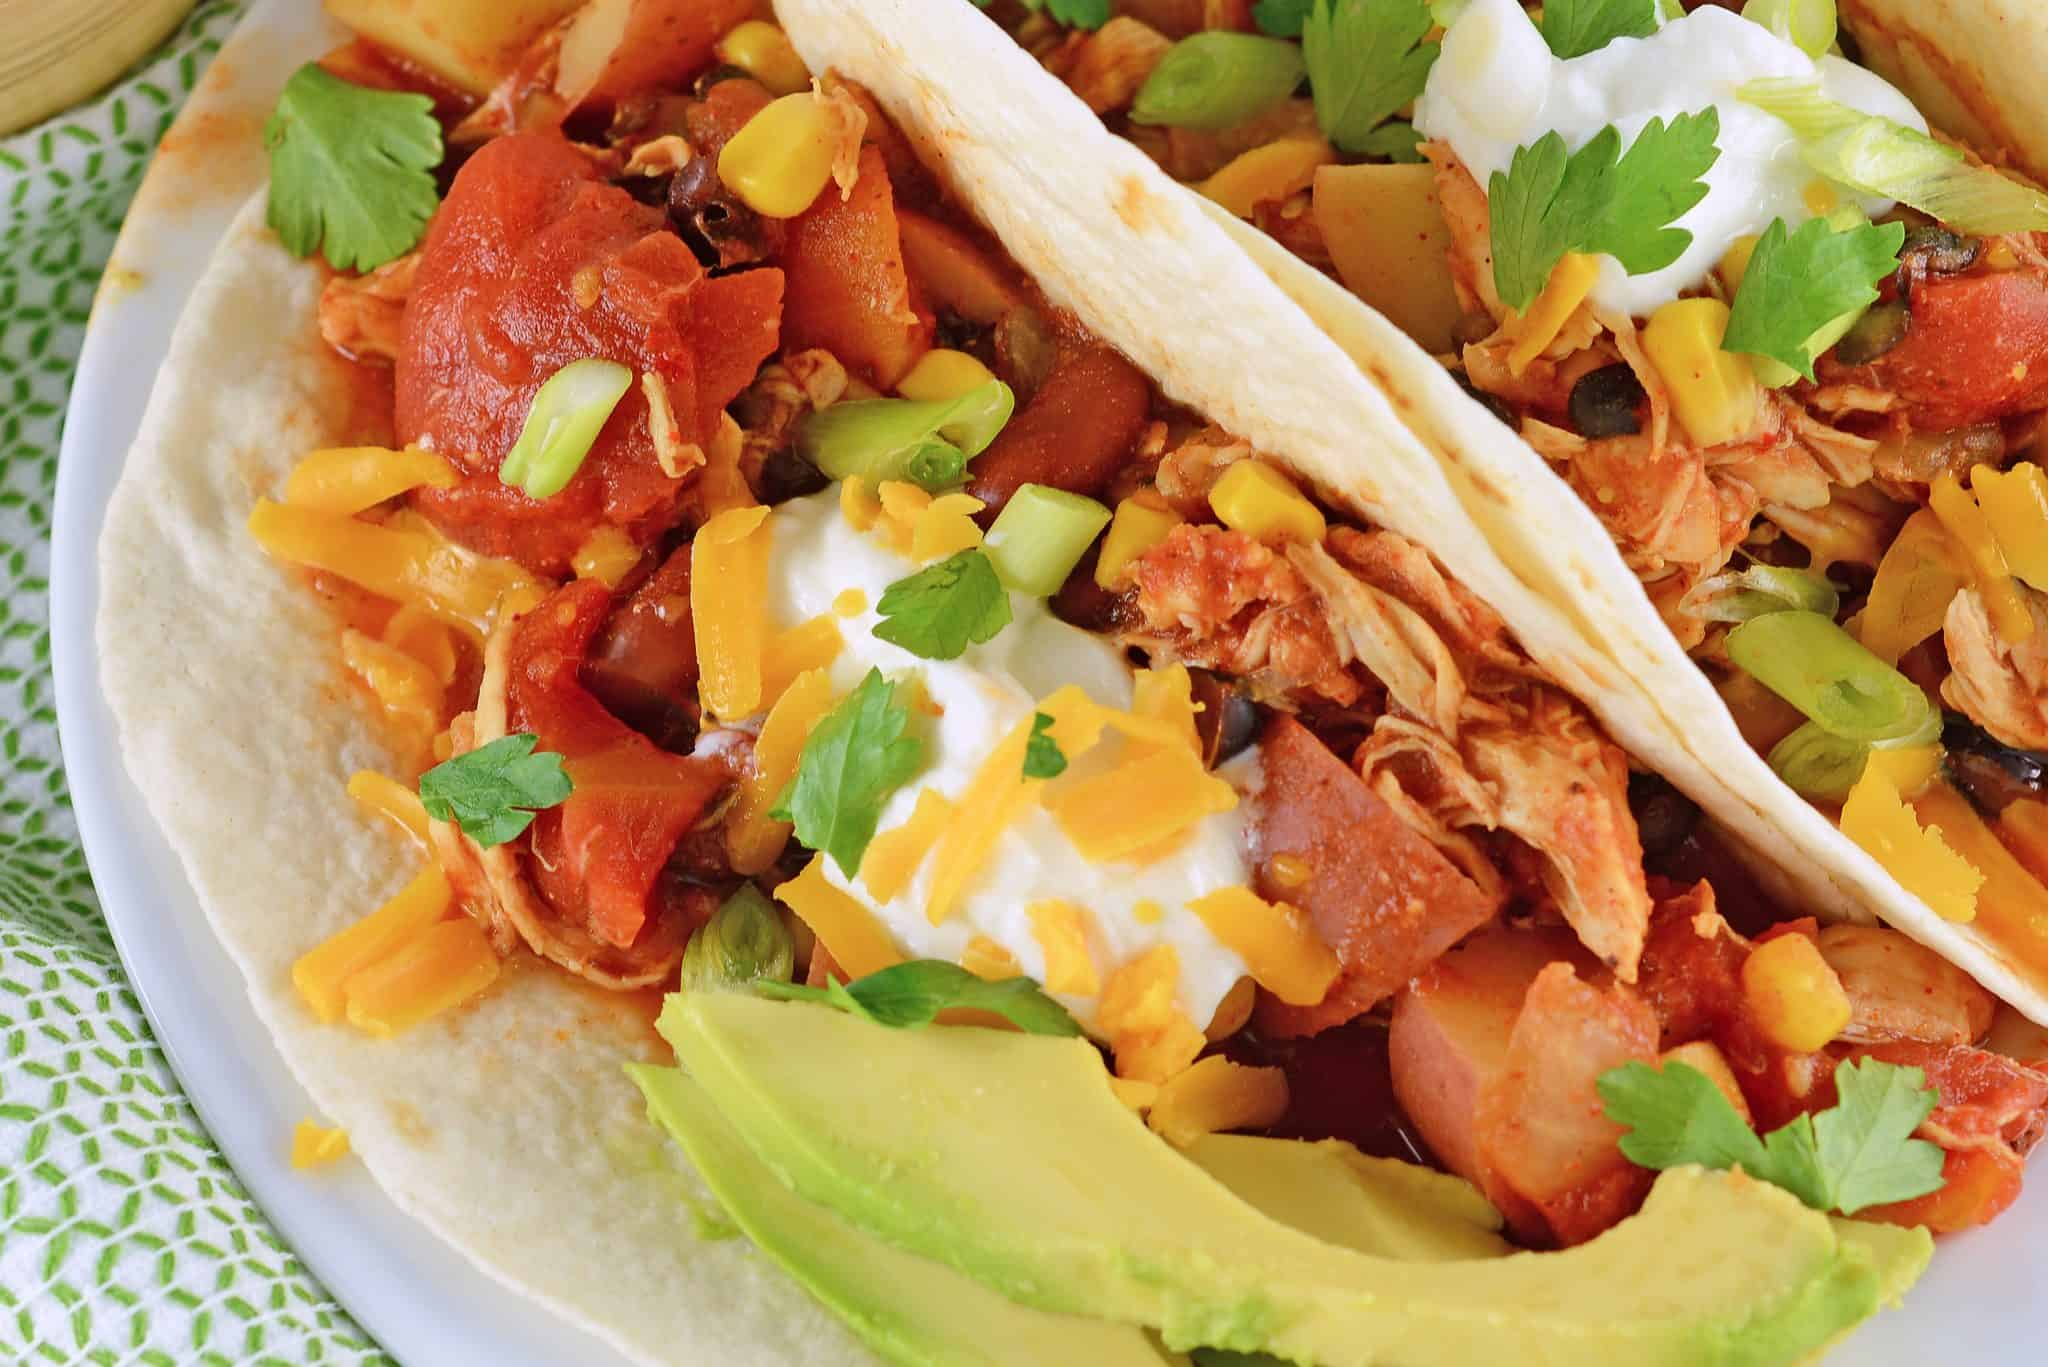 Slow Cooker Cowboy Chicken is an easy chicken recipe your whole family will love, packed with corn, potatoes, bean and a zesty taco seasoning! #slowcookerrecipes #easychickenrecipes www.savoryexperiments.com